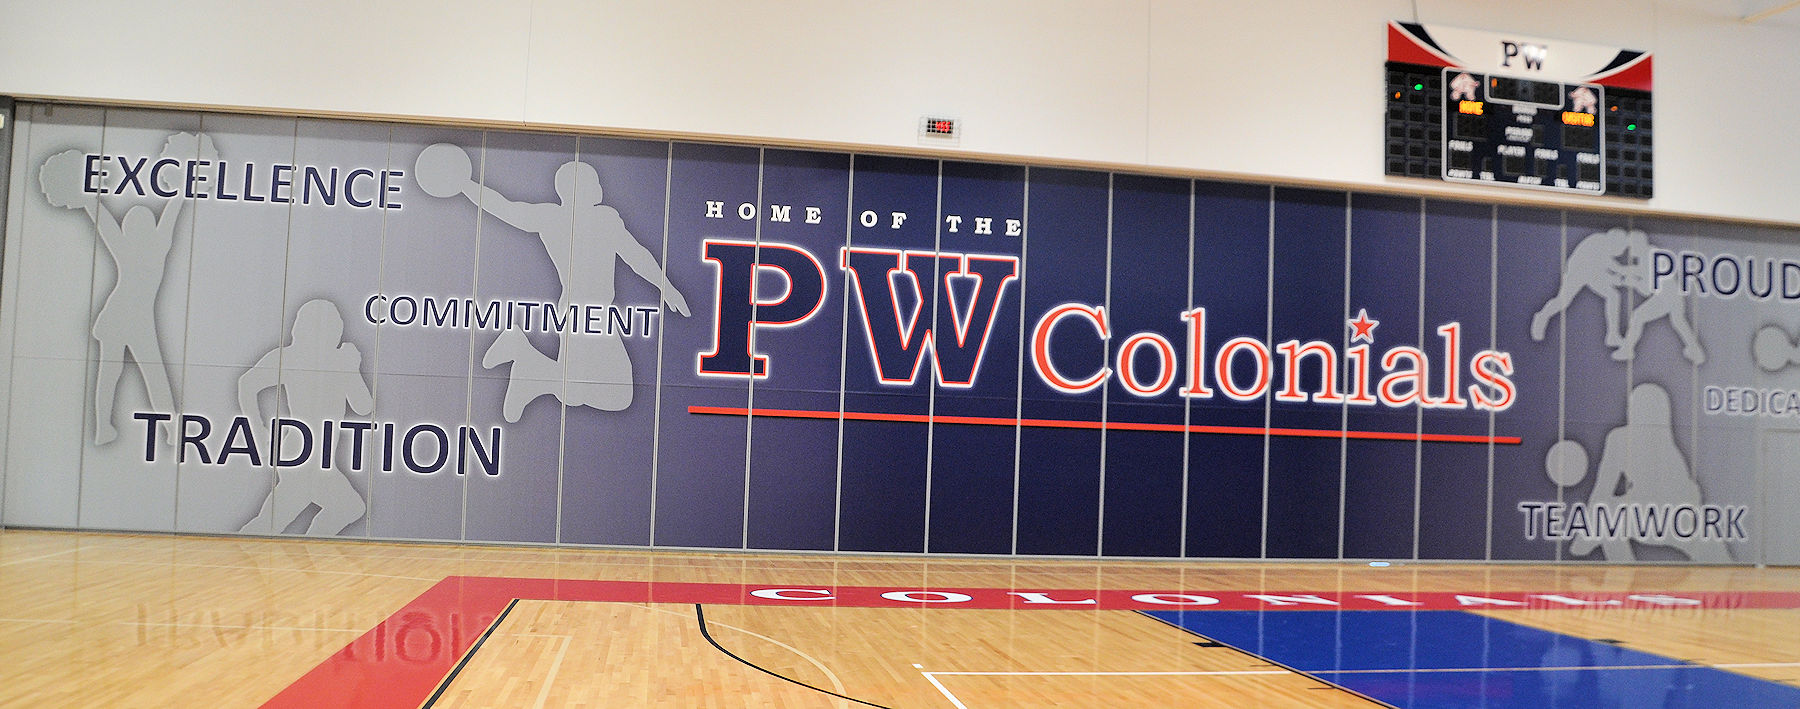 gym wall with logo